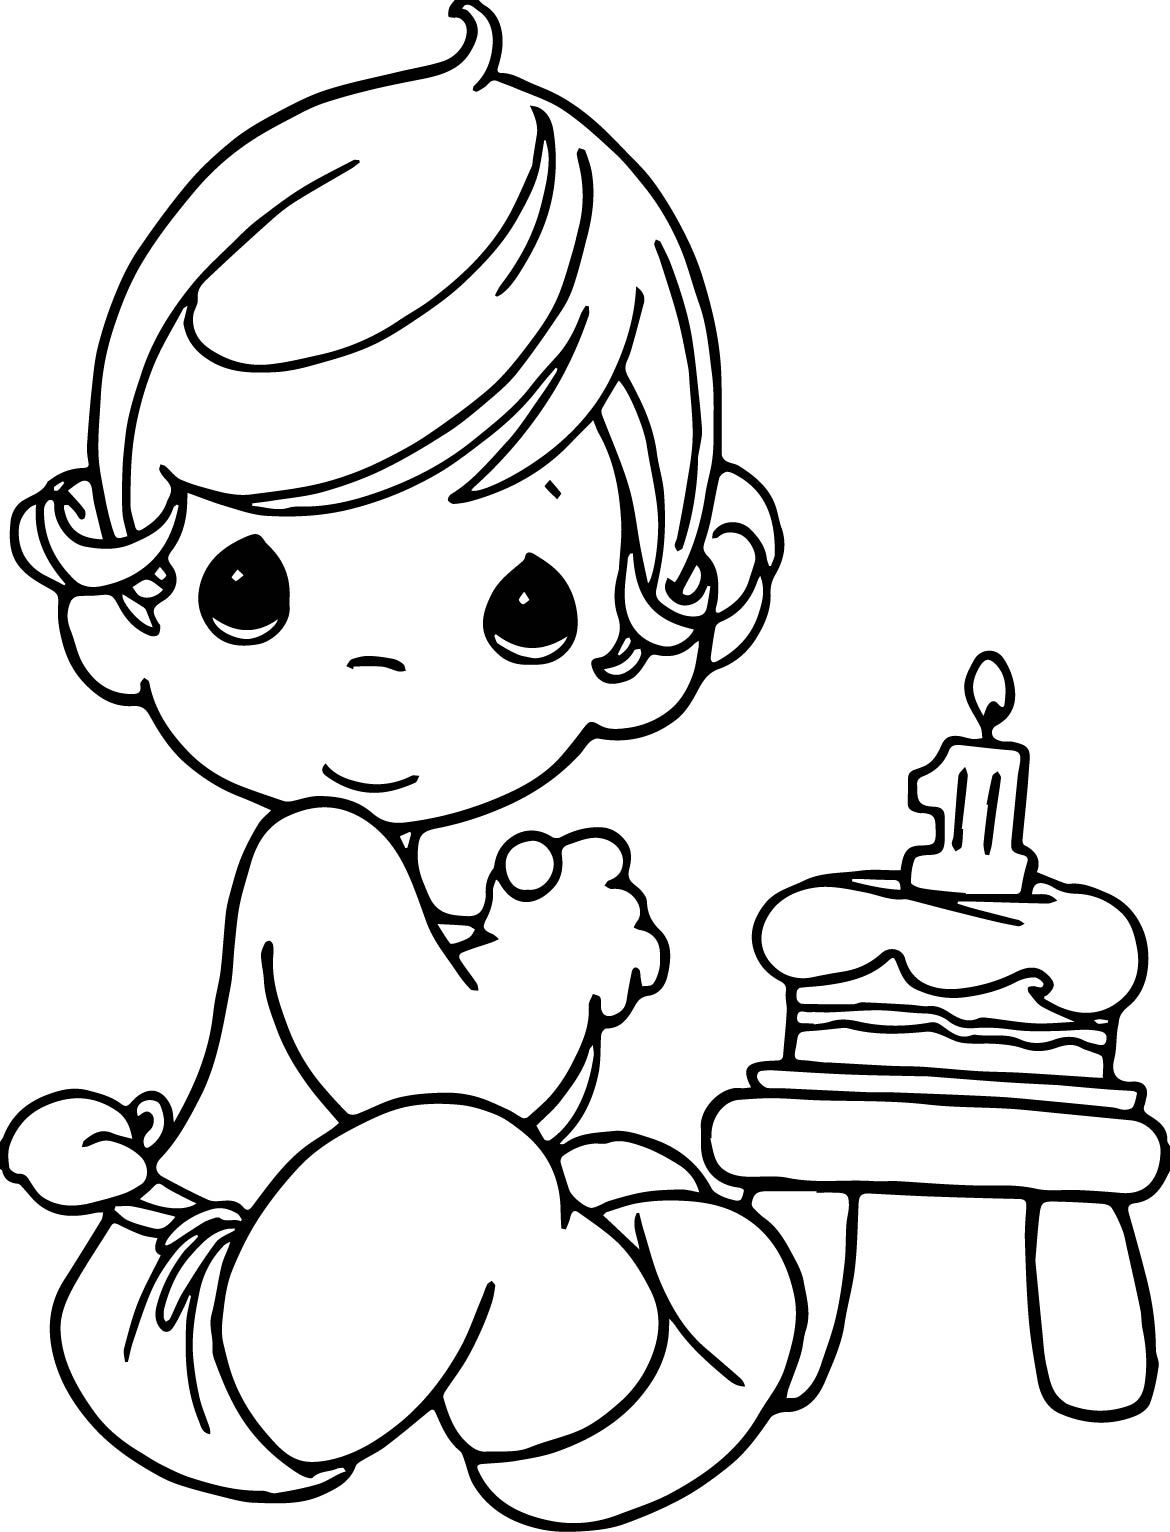 1170x1532 It S Here Precious Moment Coloring Pages Drawing At Getdrawings